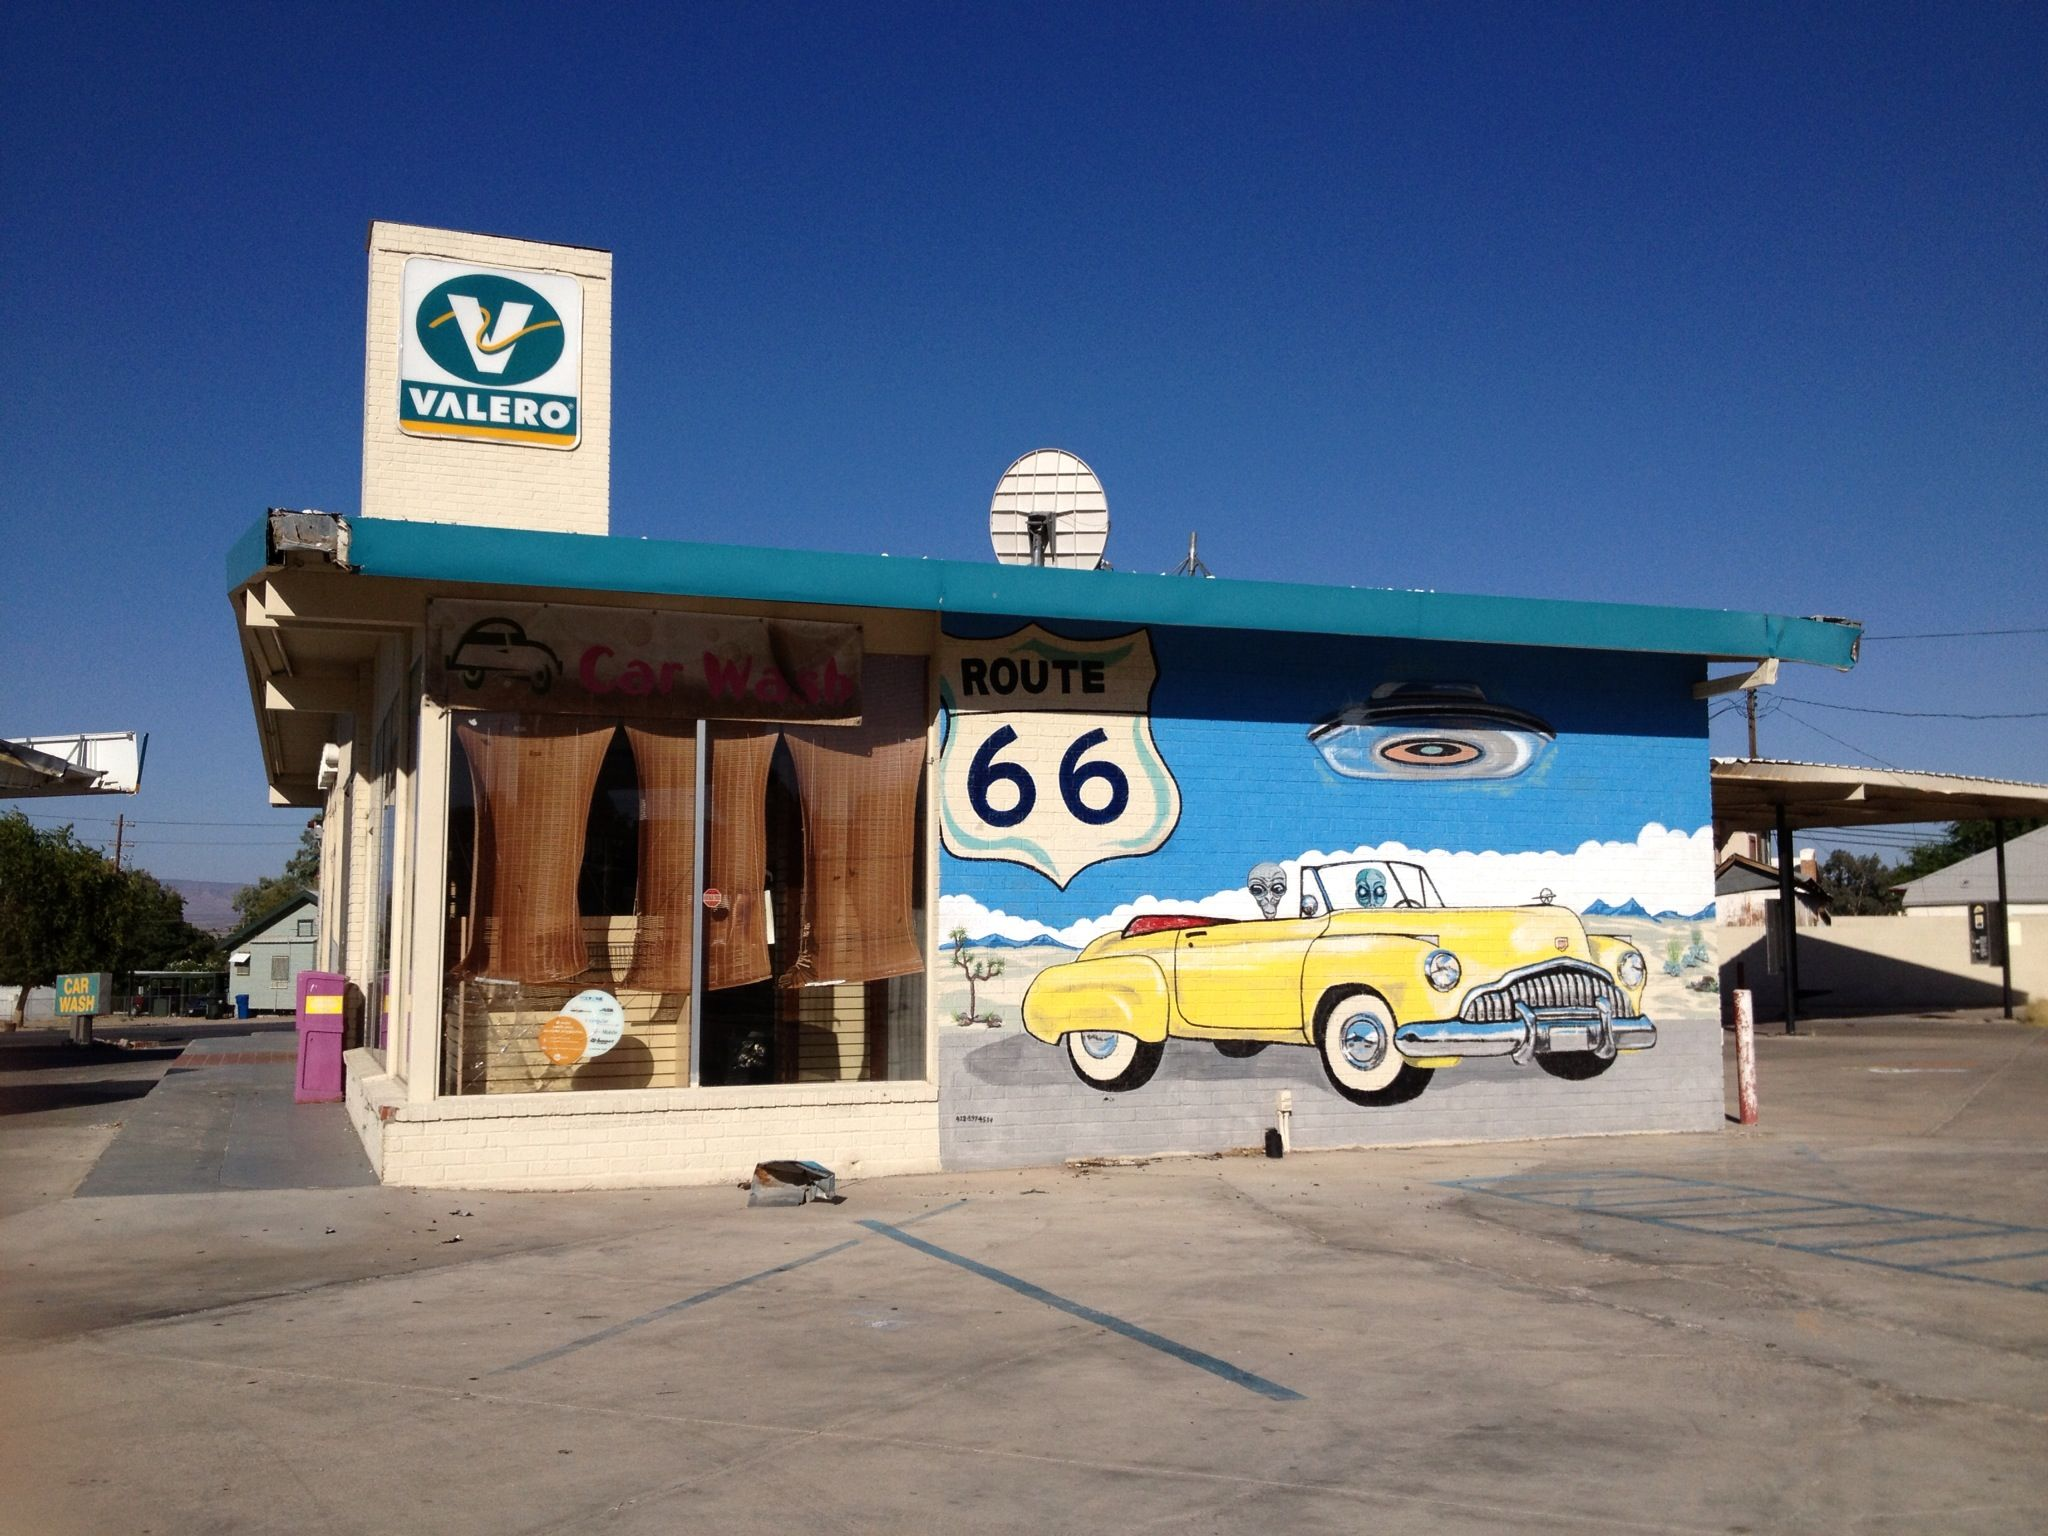 my first visit to needles. driving up and down route 66 for business